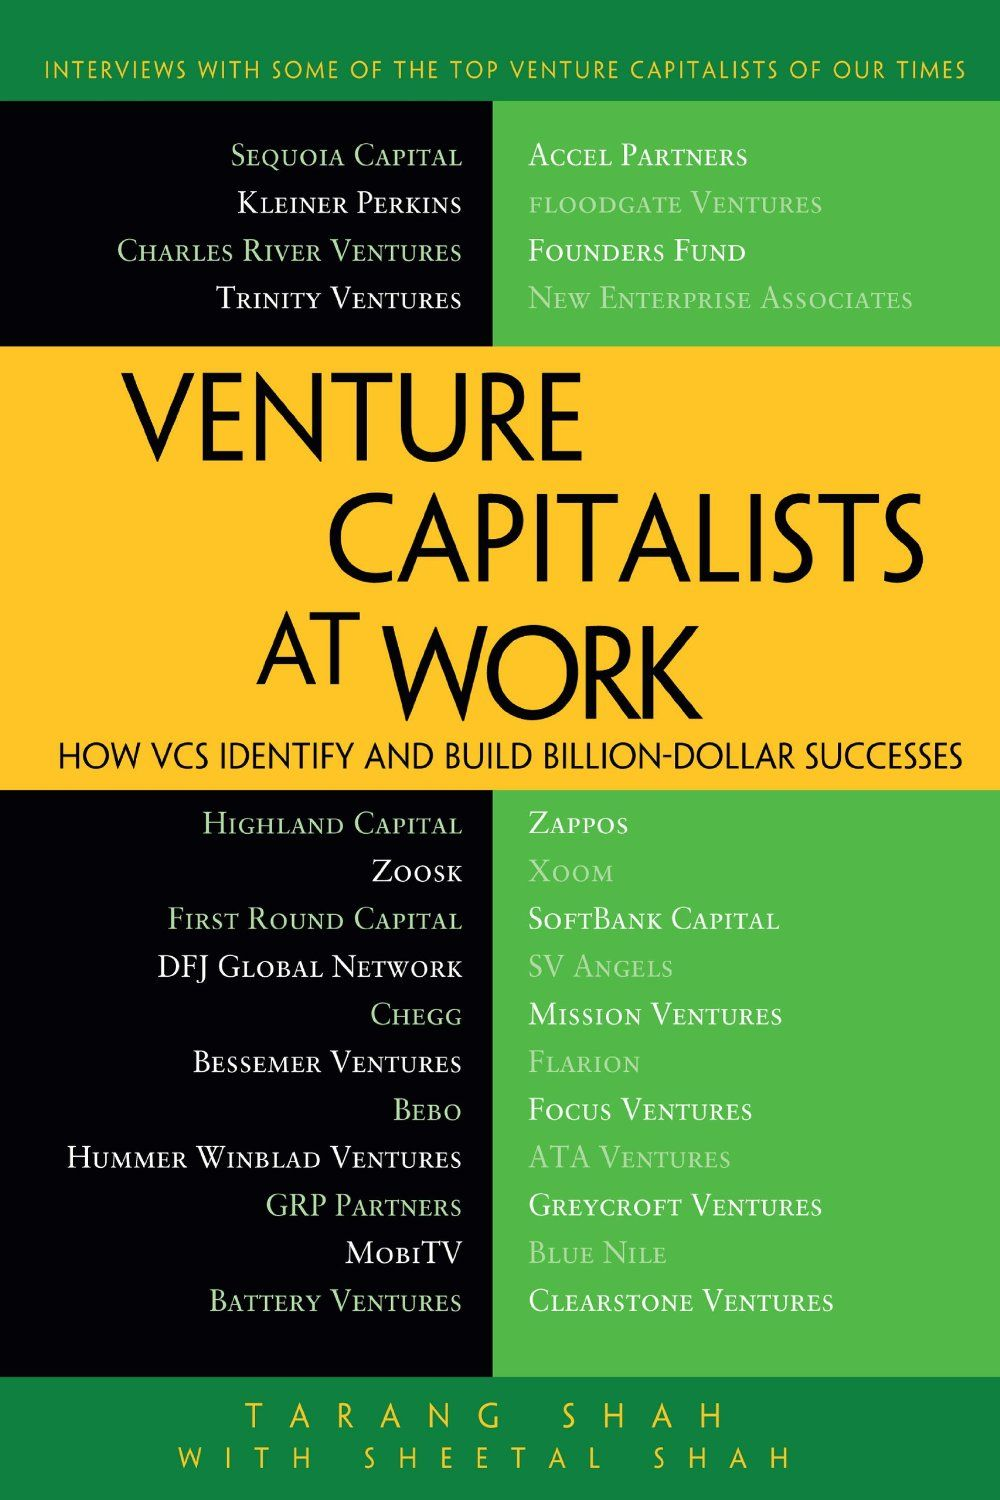 Silicon Valley Venture Capitalists